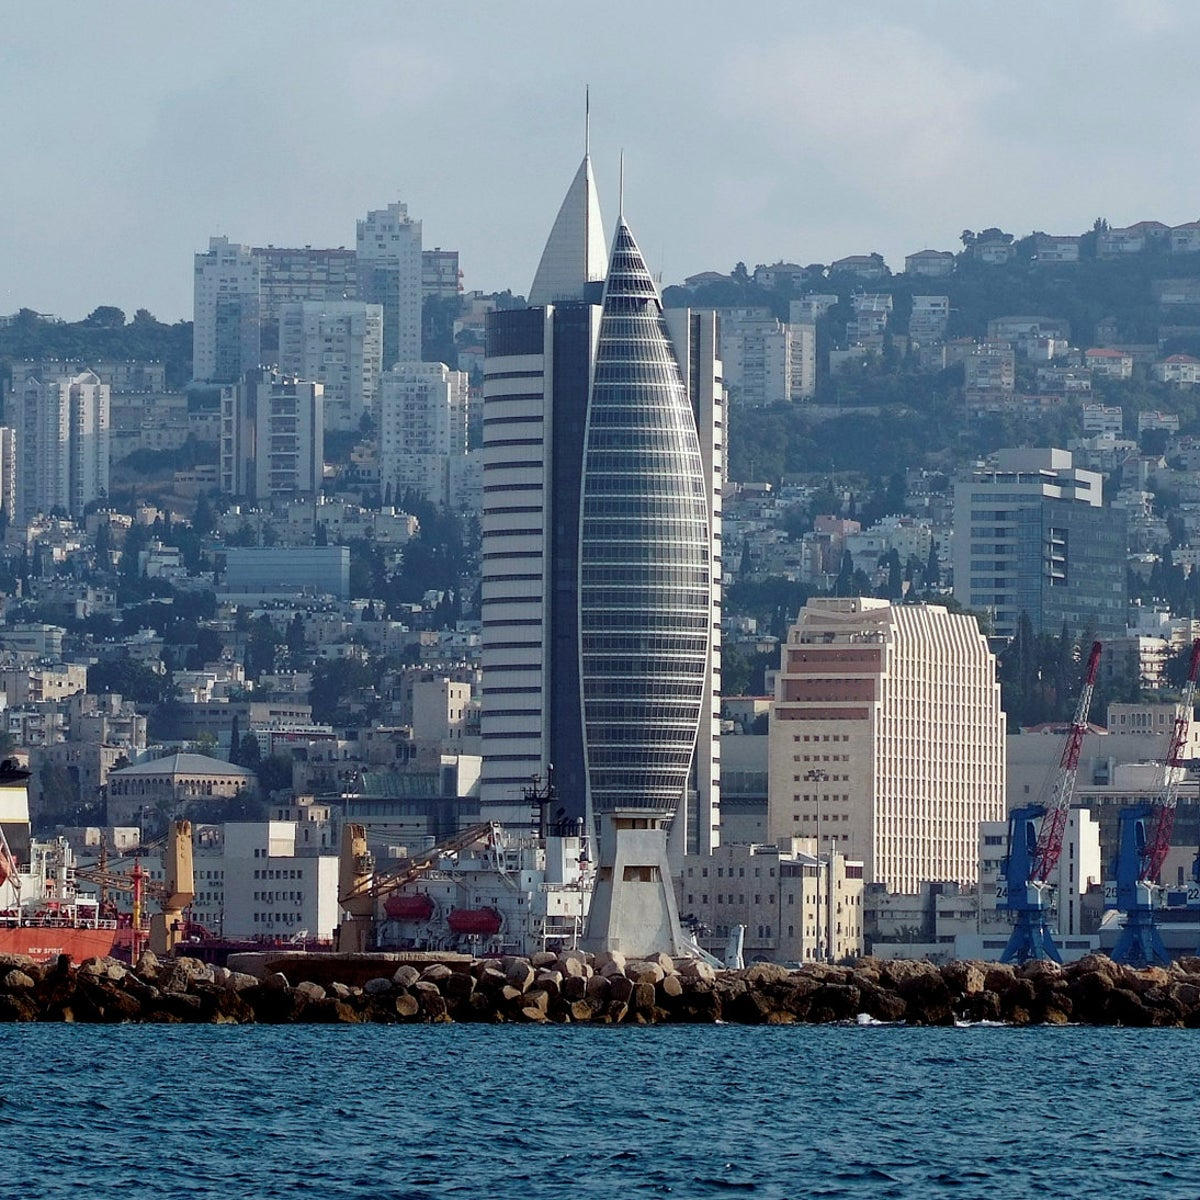 Haifa seen from the sea. Should have been the biggest winner from the national housing shortage on paper.